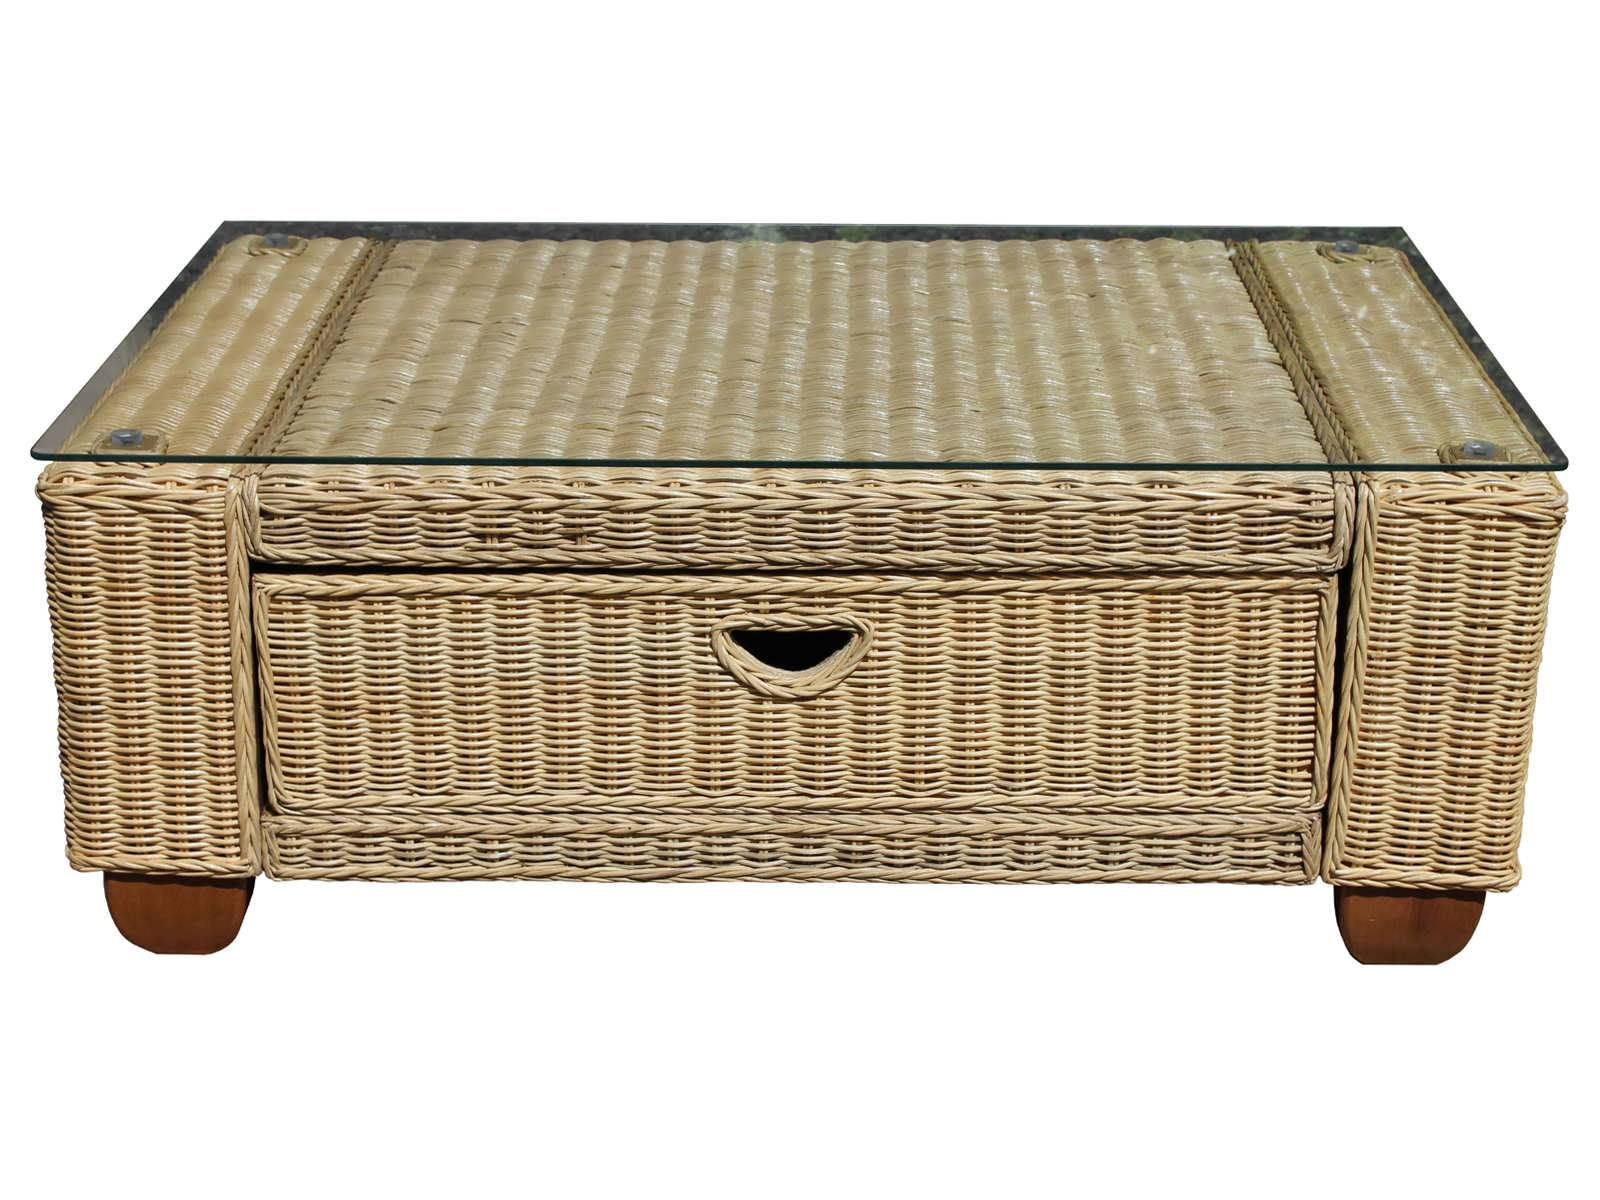 Kingston Wicker Coffee Table